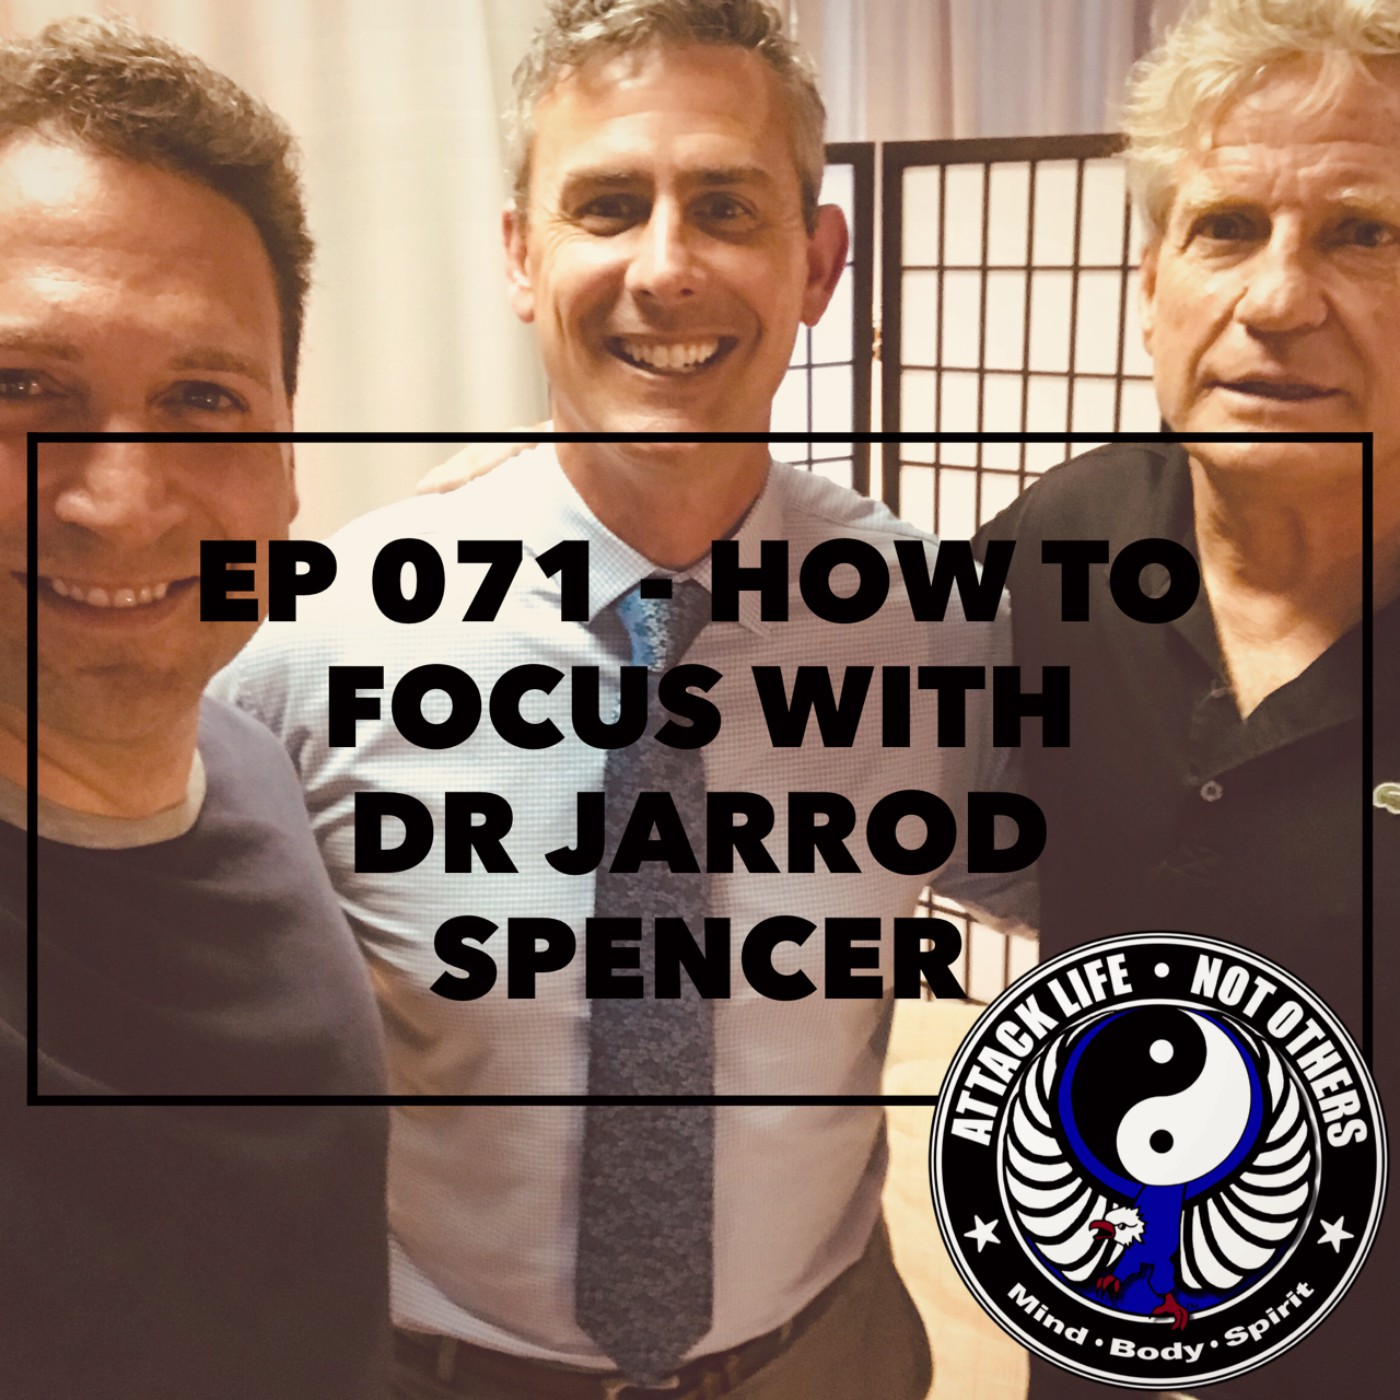 Ep 071 - How to Focus with Dr Jarrod Spencer